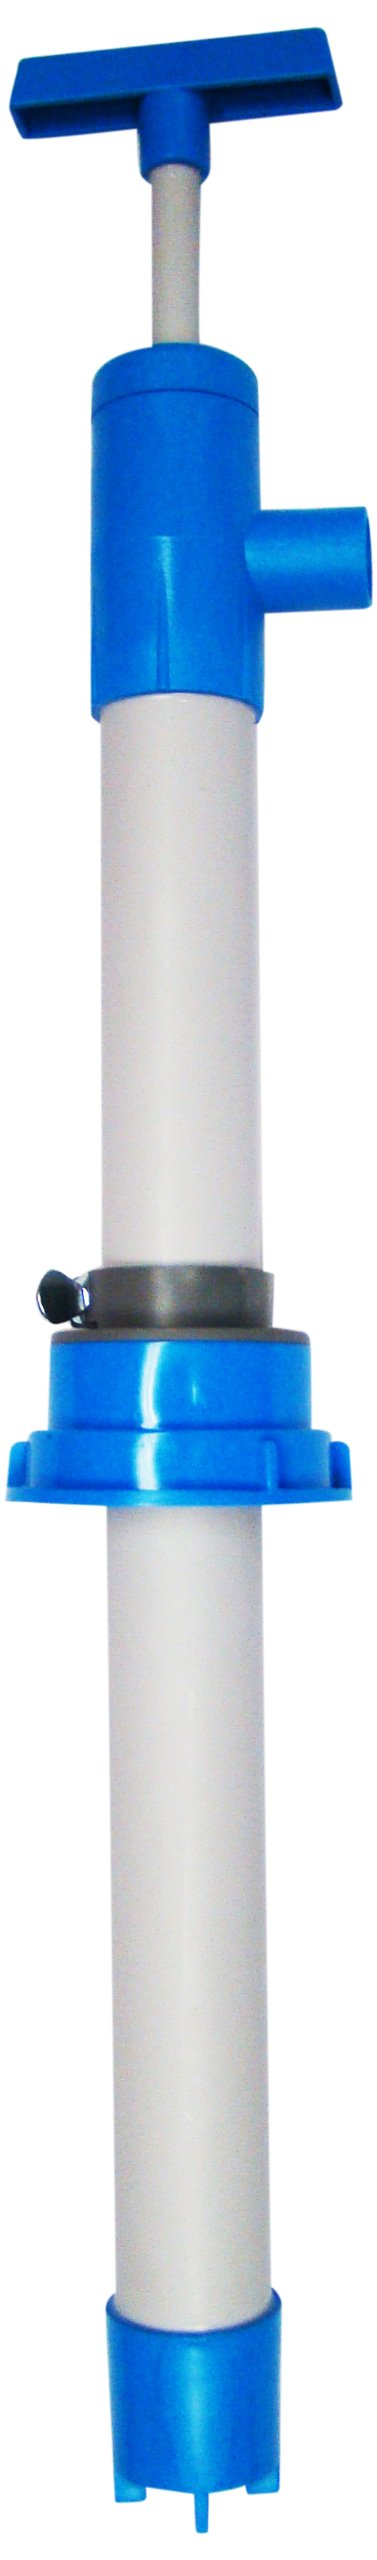 Action Pump 7011 PVC Siphon Pump for 5-6 Gallon Pails, 70 mm Bung Adapter